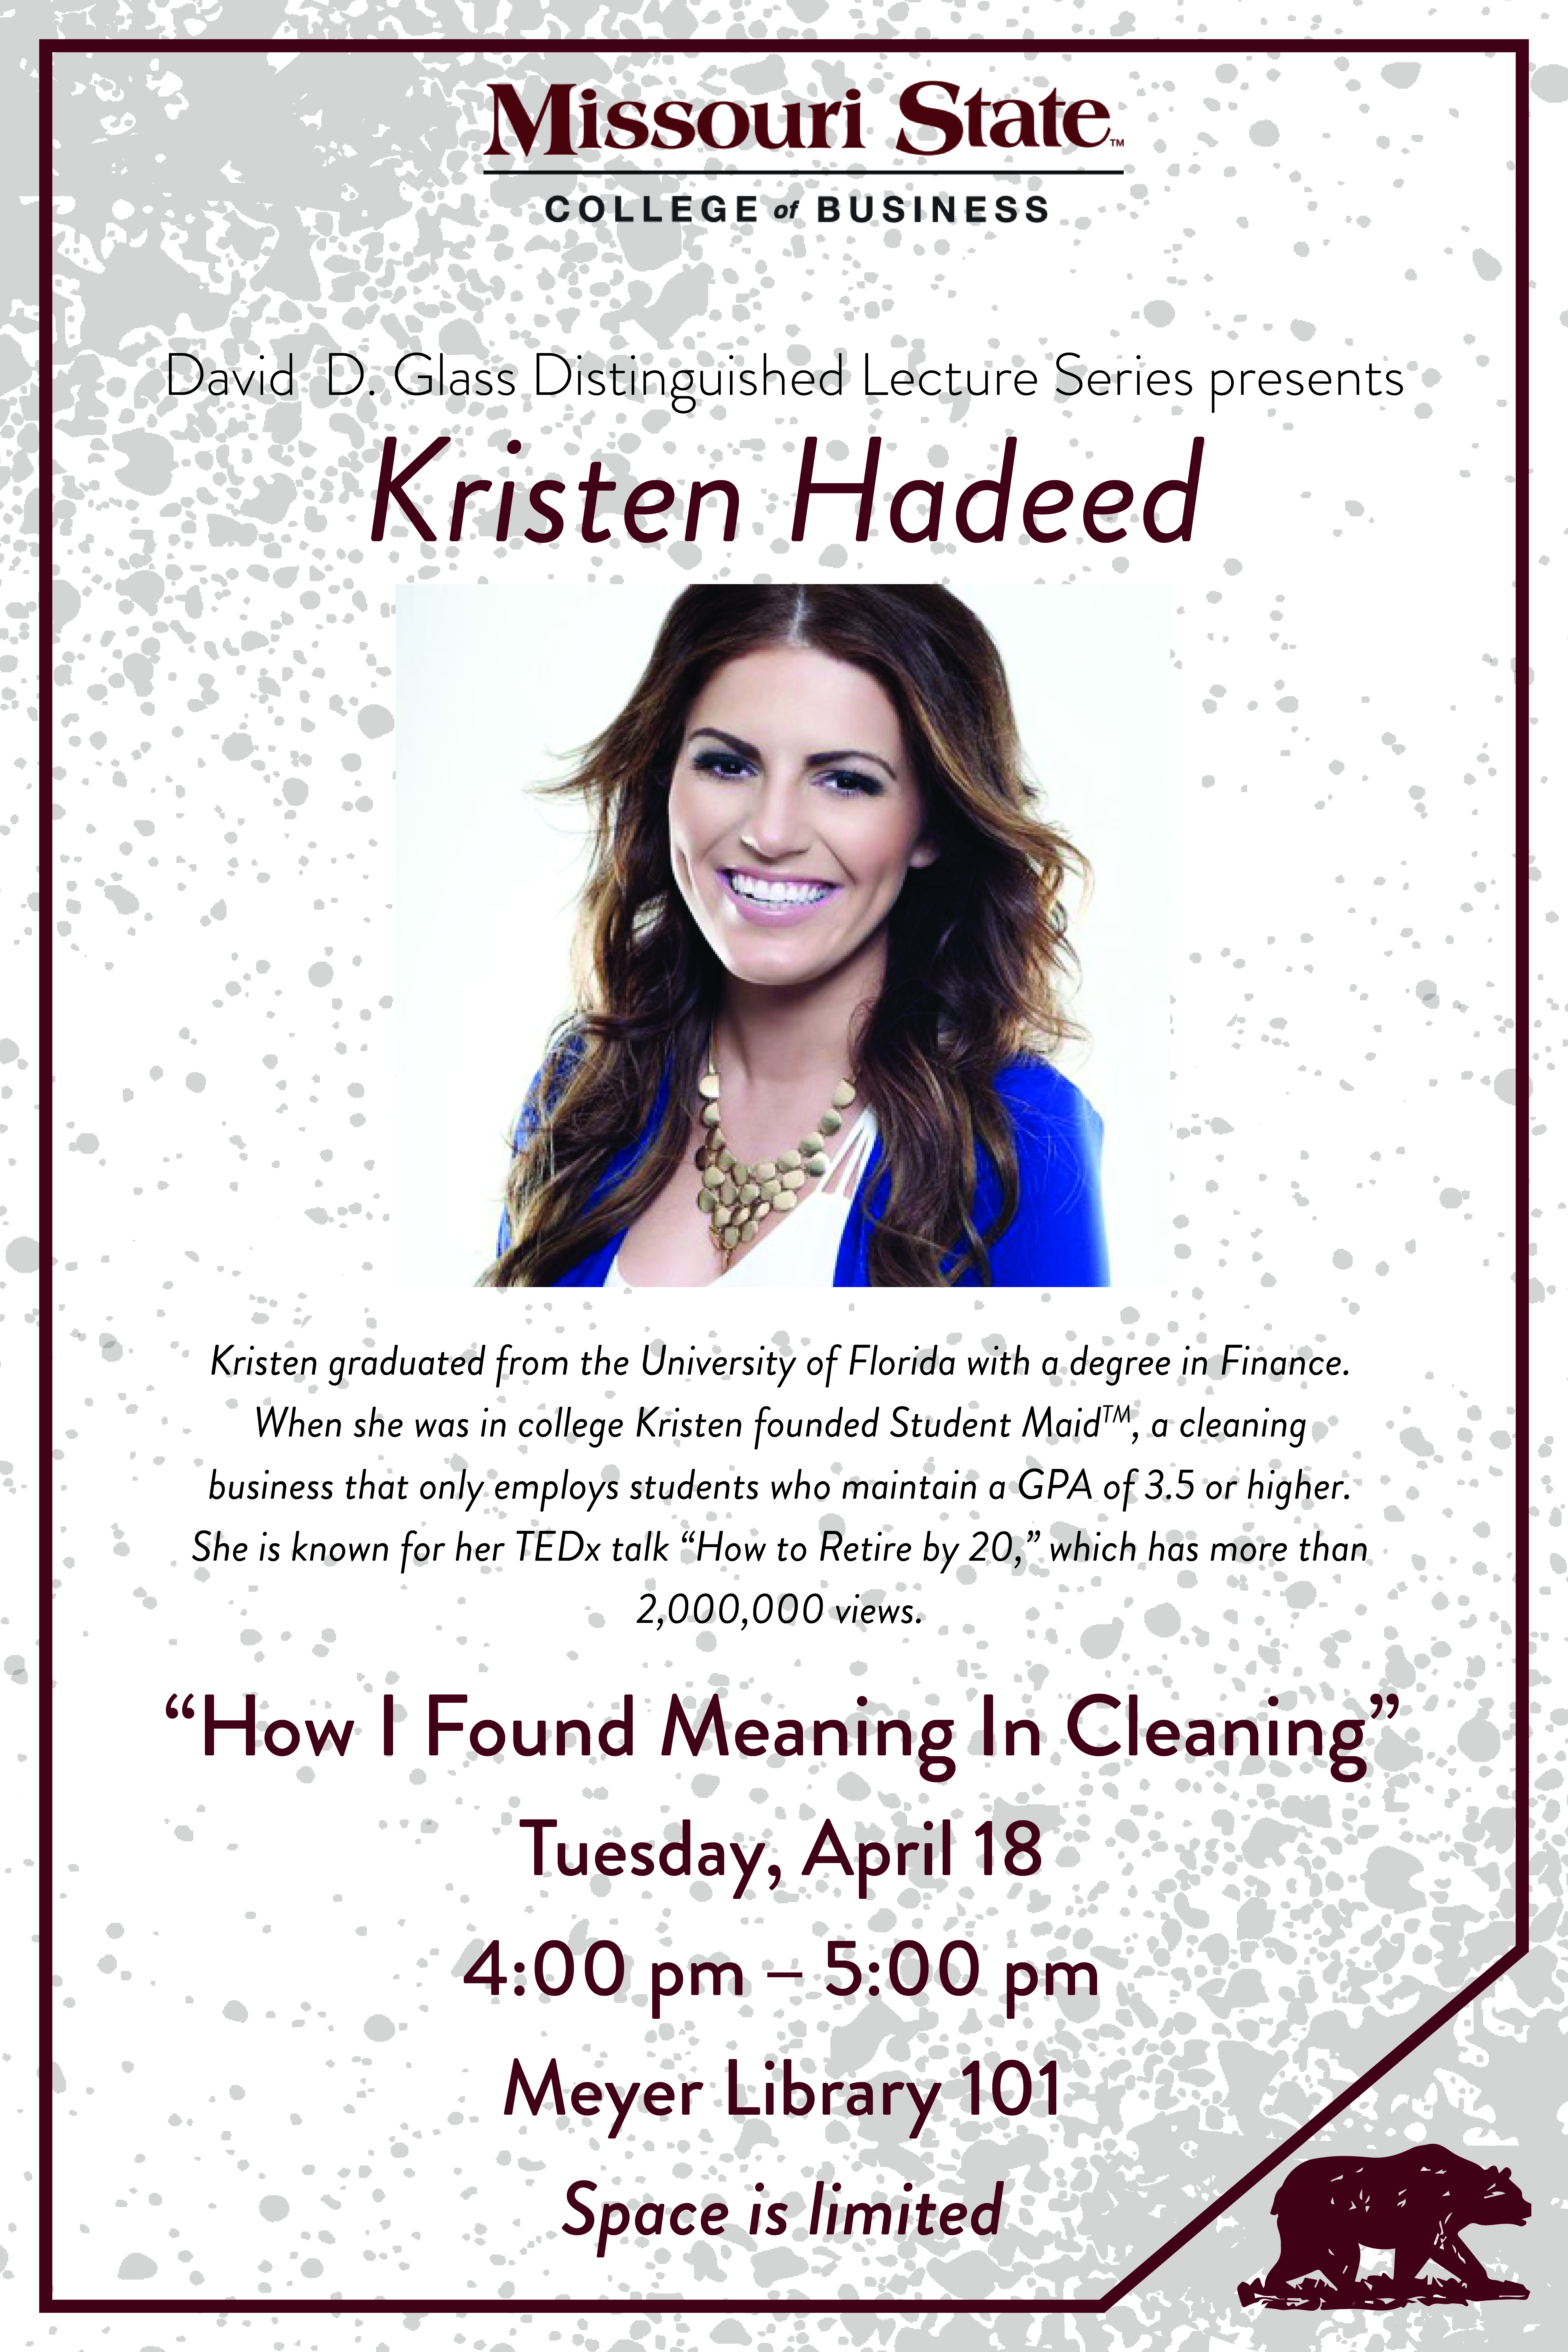 David D. Glass Lecture Series Welcomes Kristen Hadeed